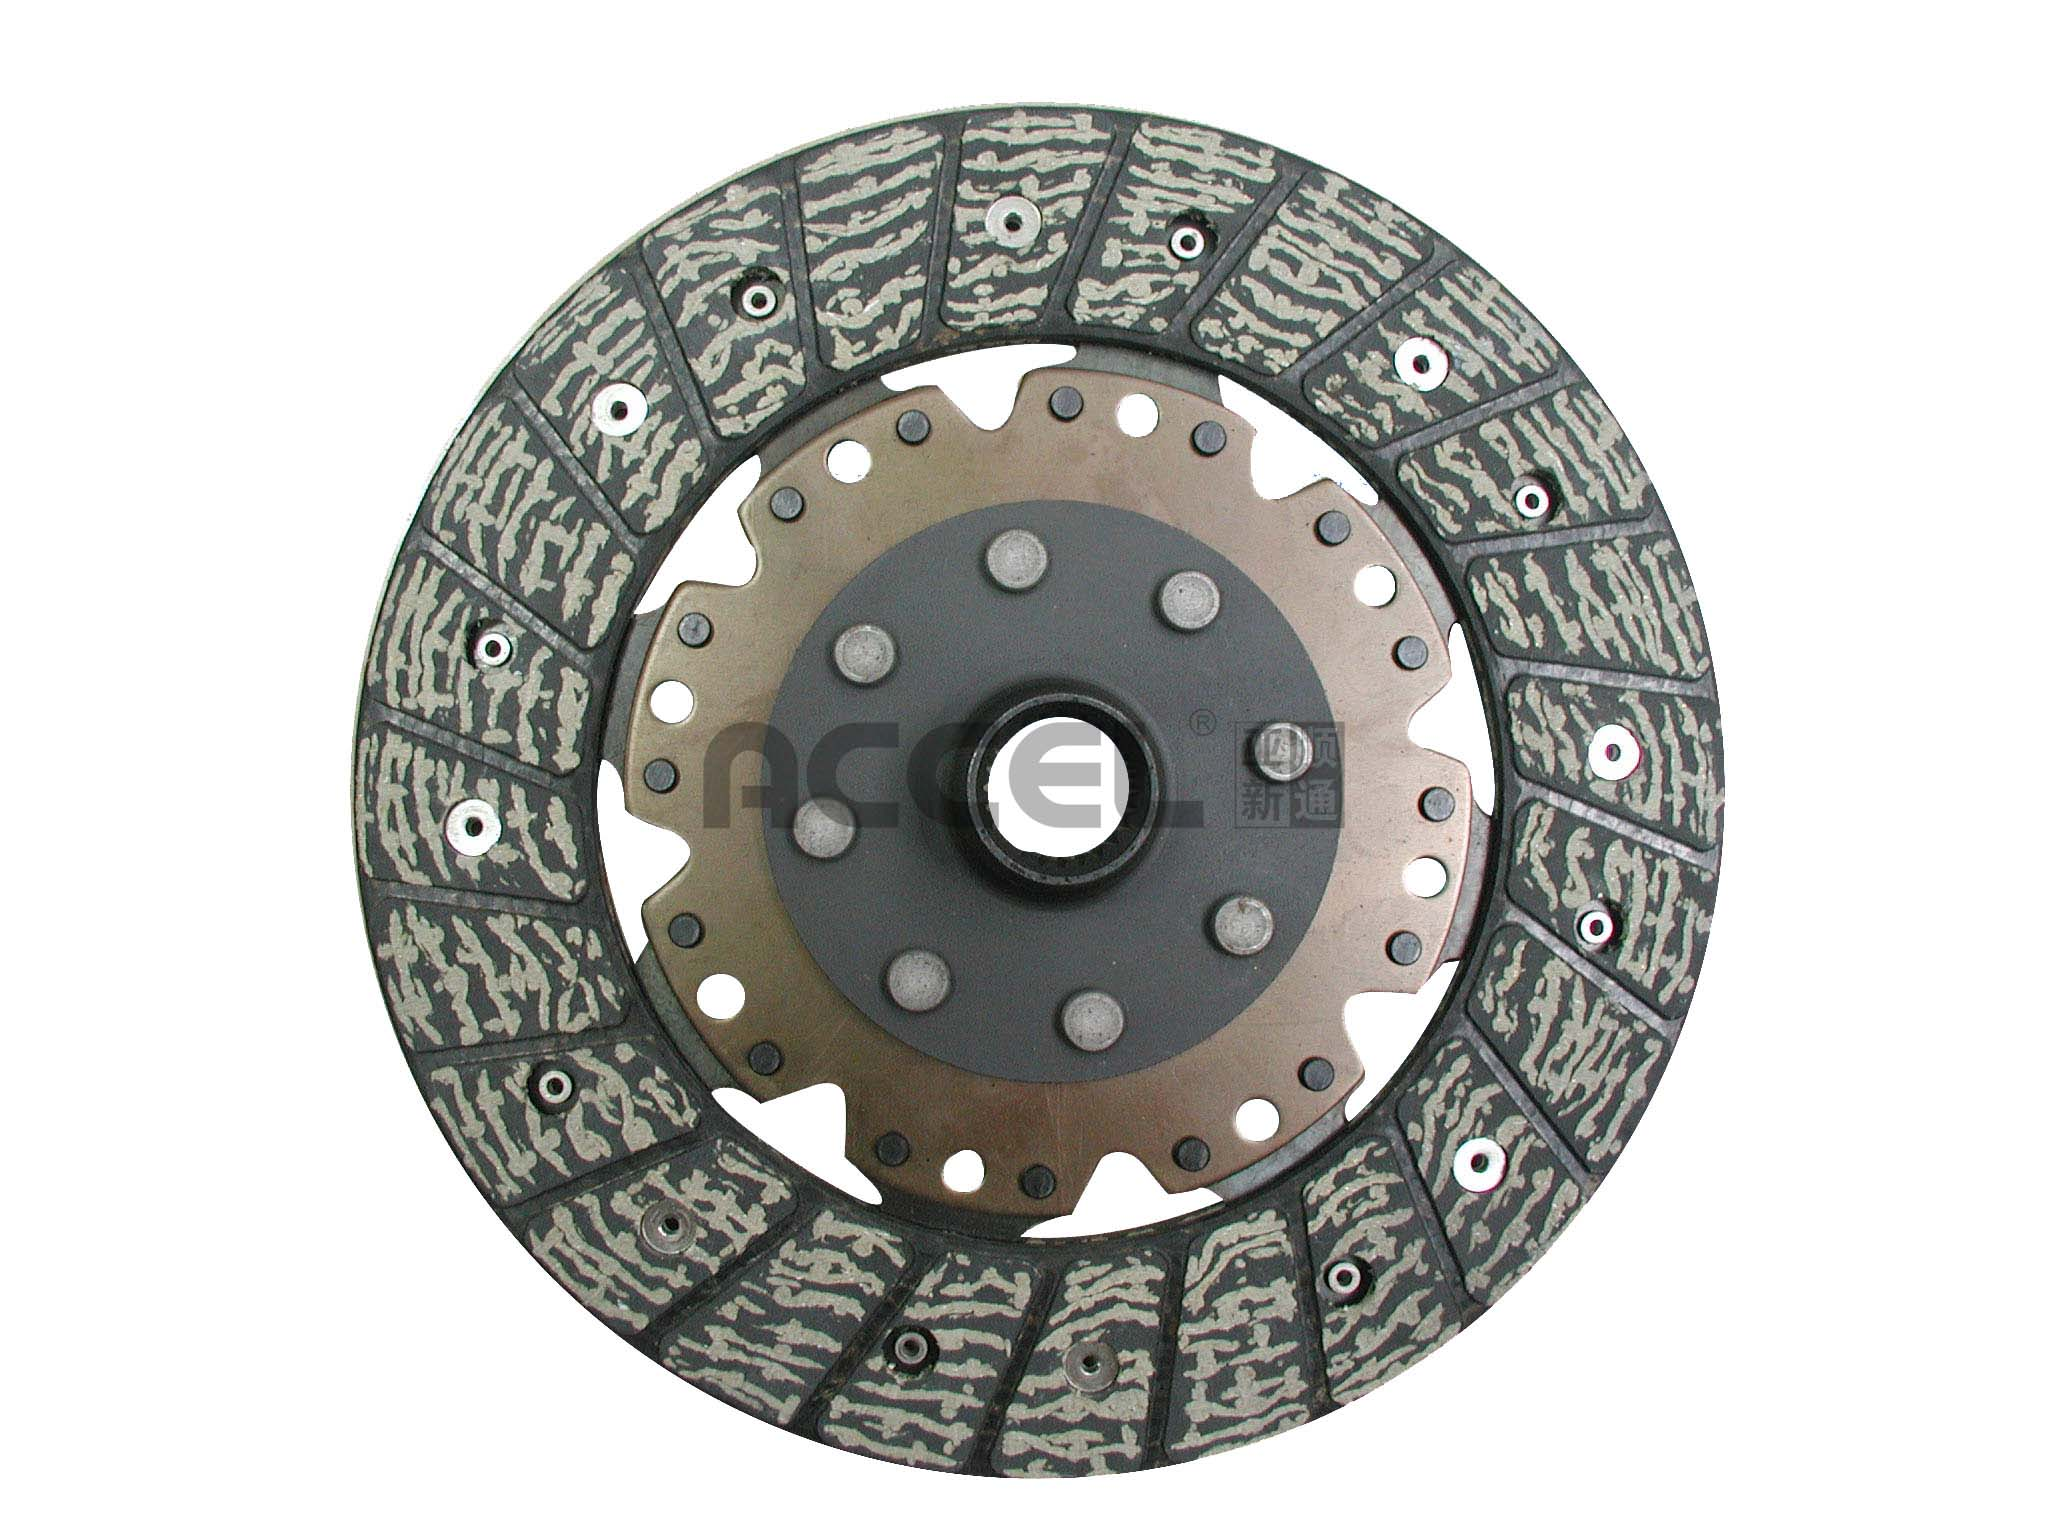 Clutch Disc/OE:NULL/200*130*24*20.6/ARC-005/RACING CAR/CL1299